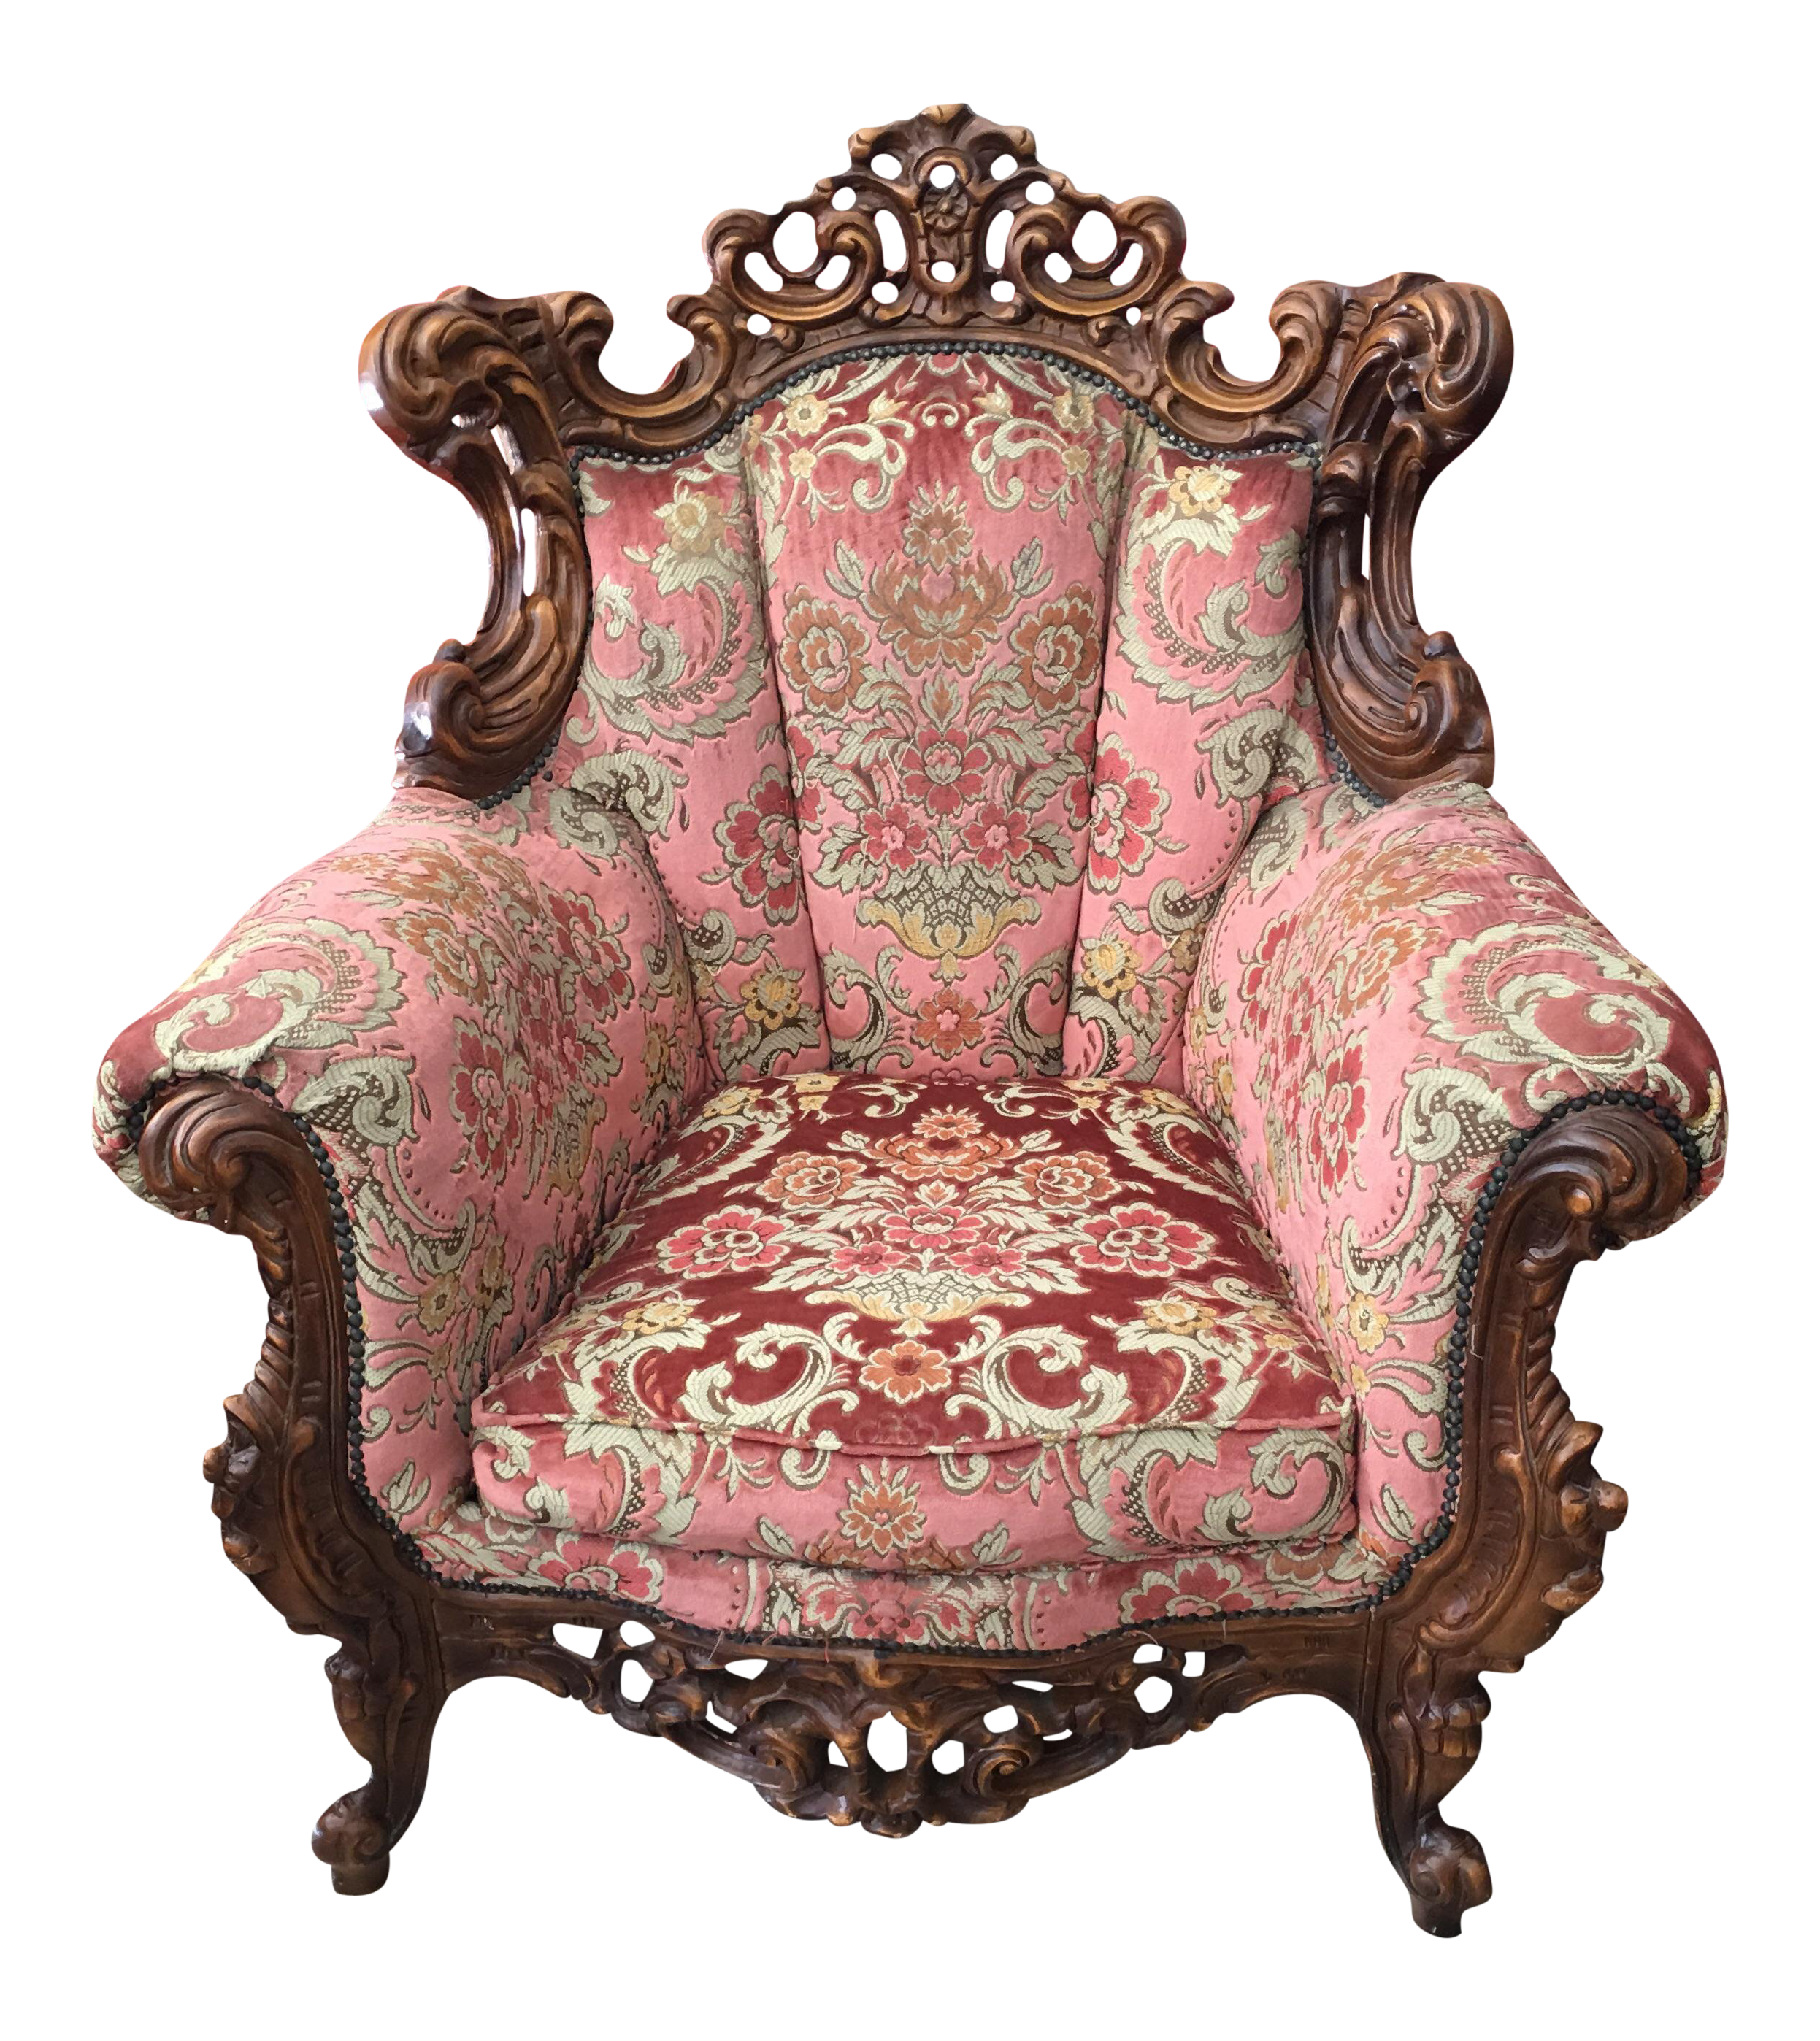 Merveilleux Baroque Rococo Carved Chair